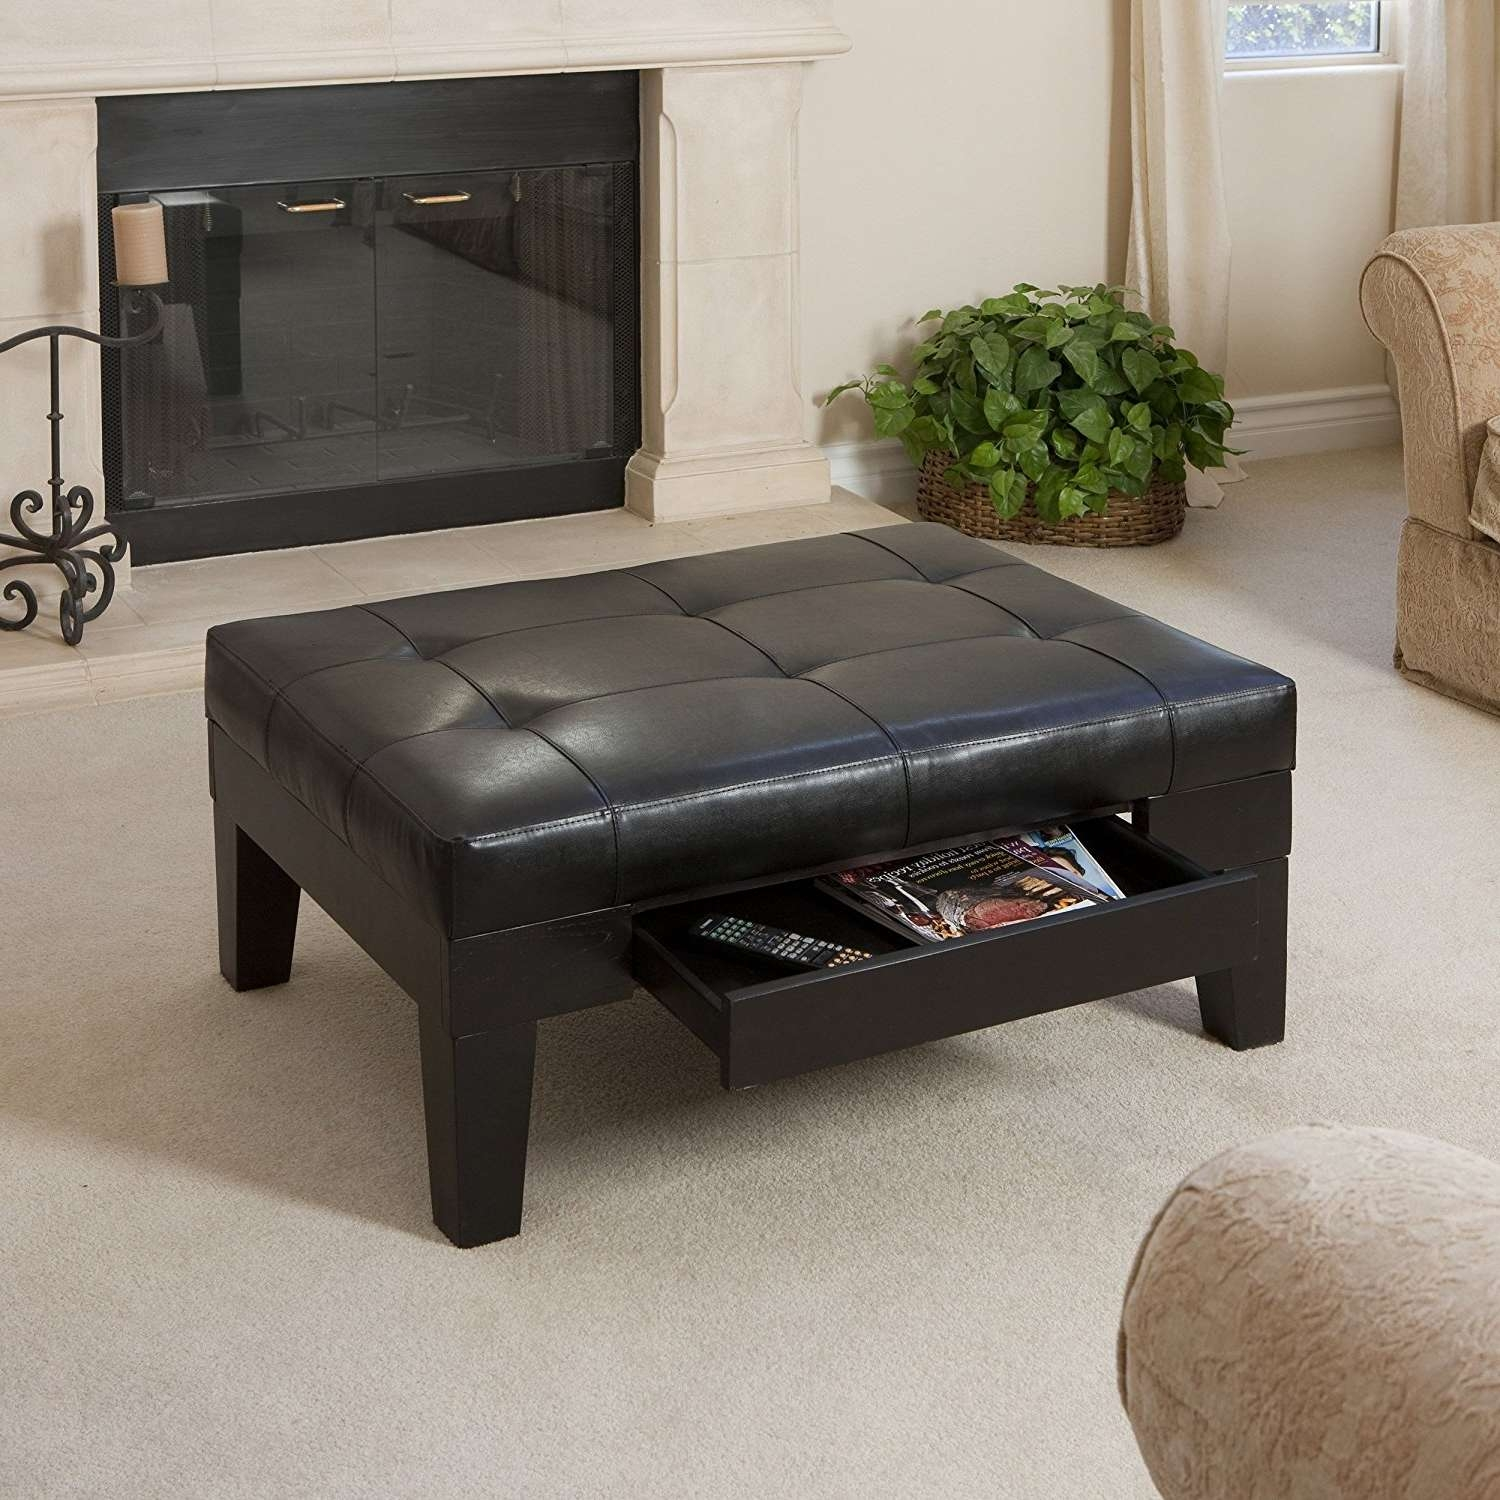 Large Footstool Coffee Table Tags : Fabulous Leather Storage In Latest Large Coffee Table With Storage (View 13 of 20)